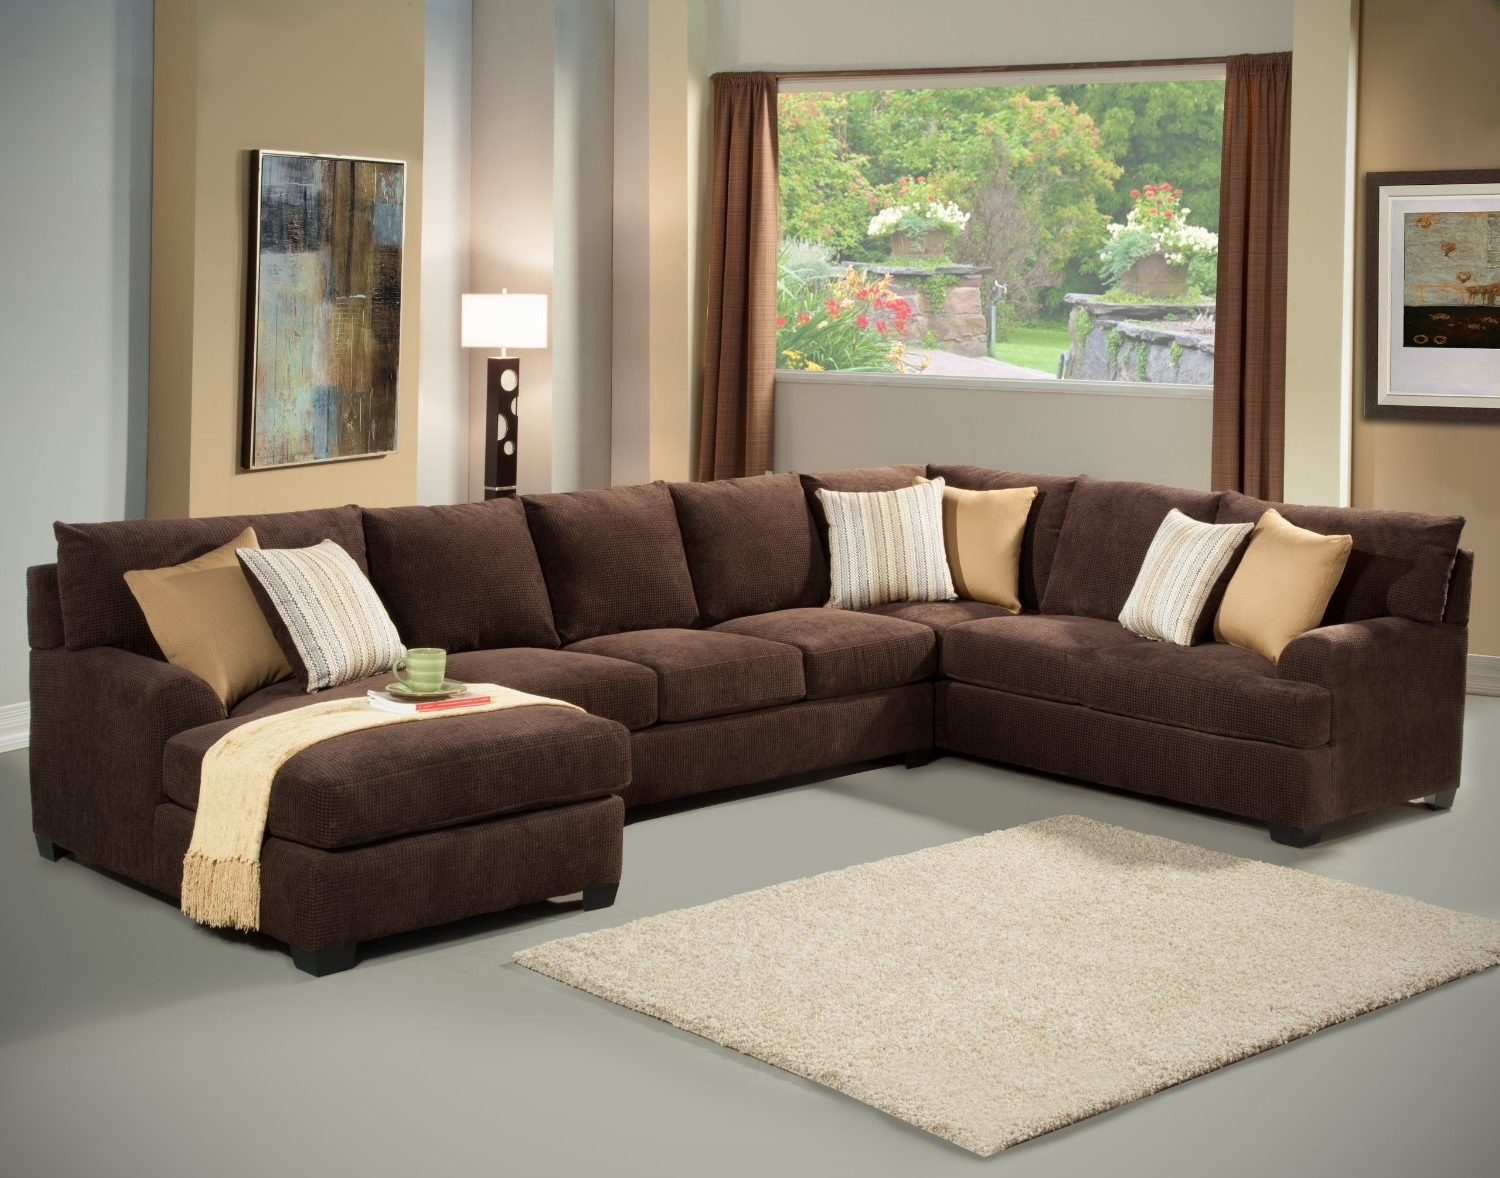 Microfiber Chaise Lounges Within Popular Sofa : Modern Sectional Couch With Chaise Lounge Tufted Couch Set (View 13 of 15)